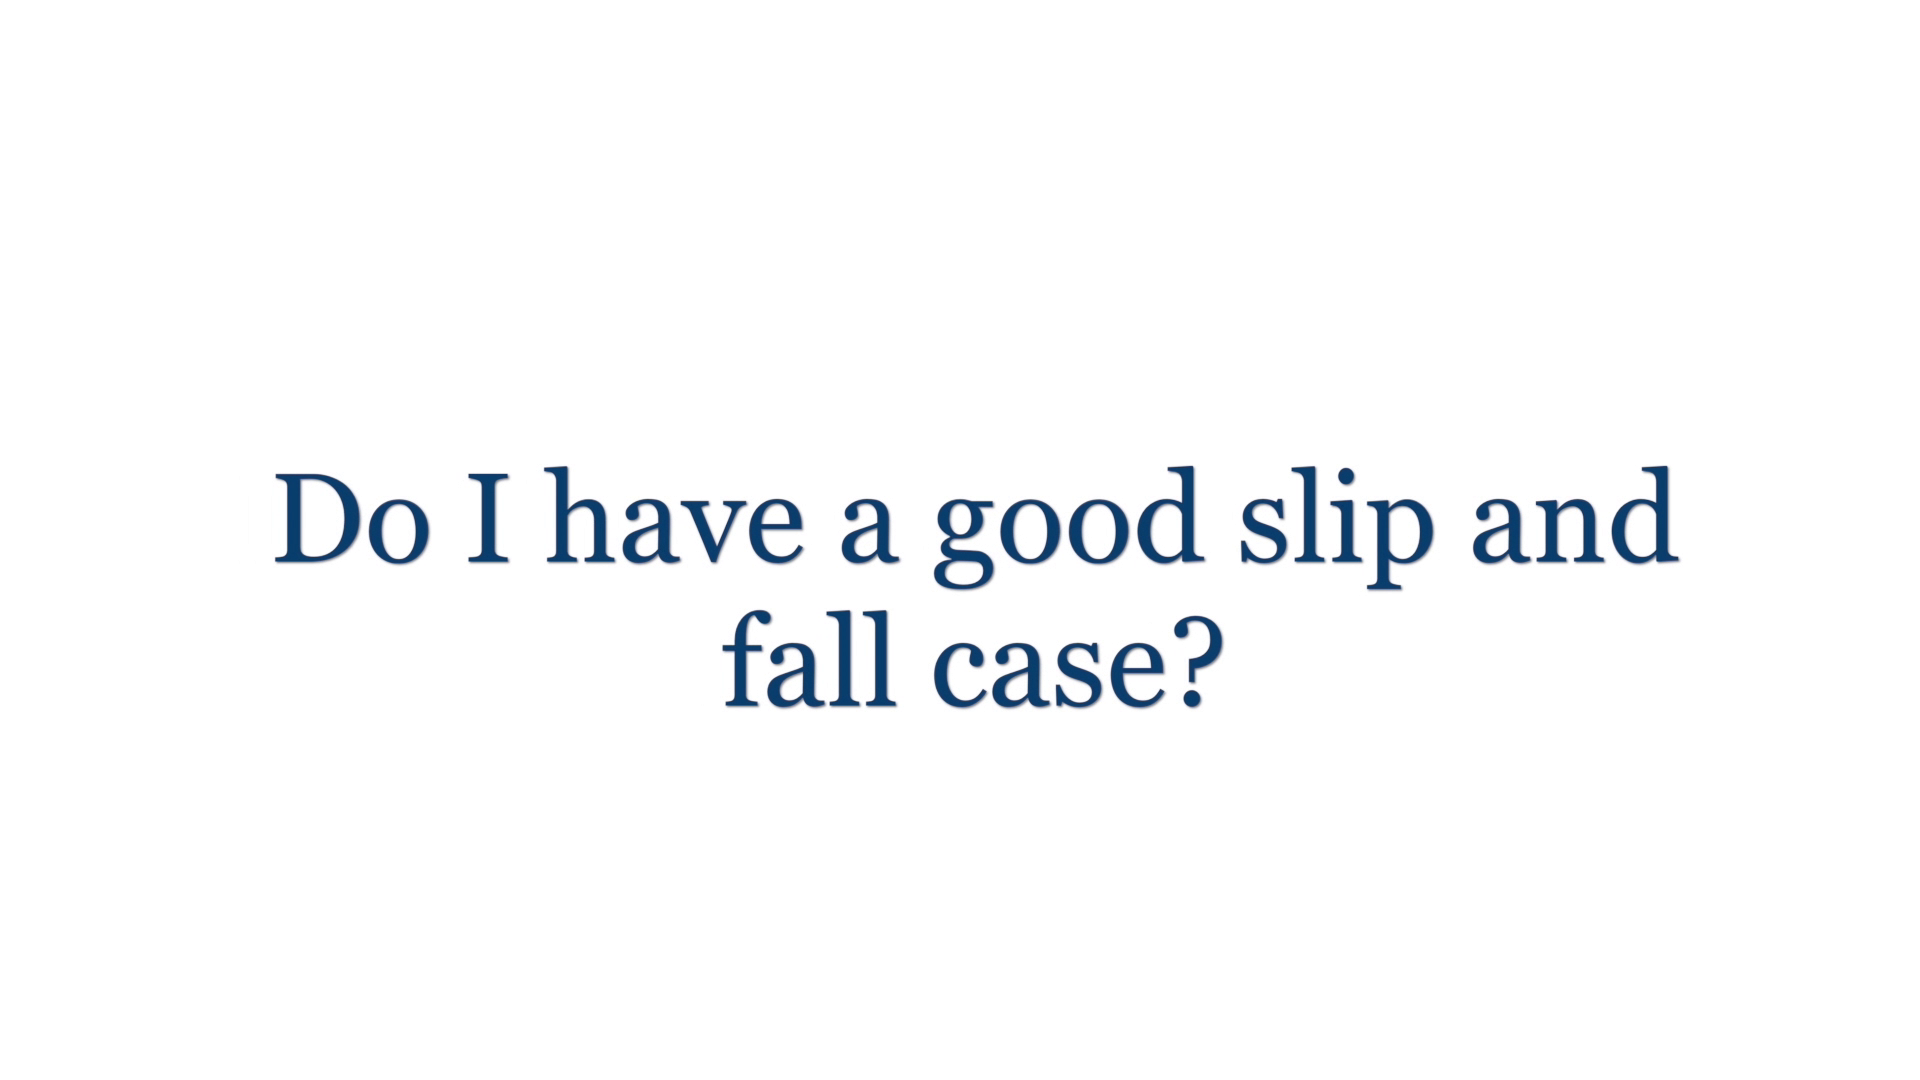 Do I have a good slip and fall injury case?